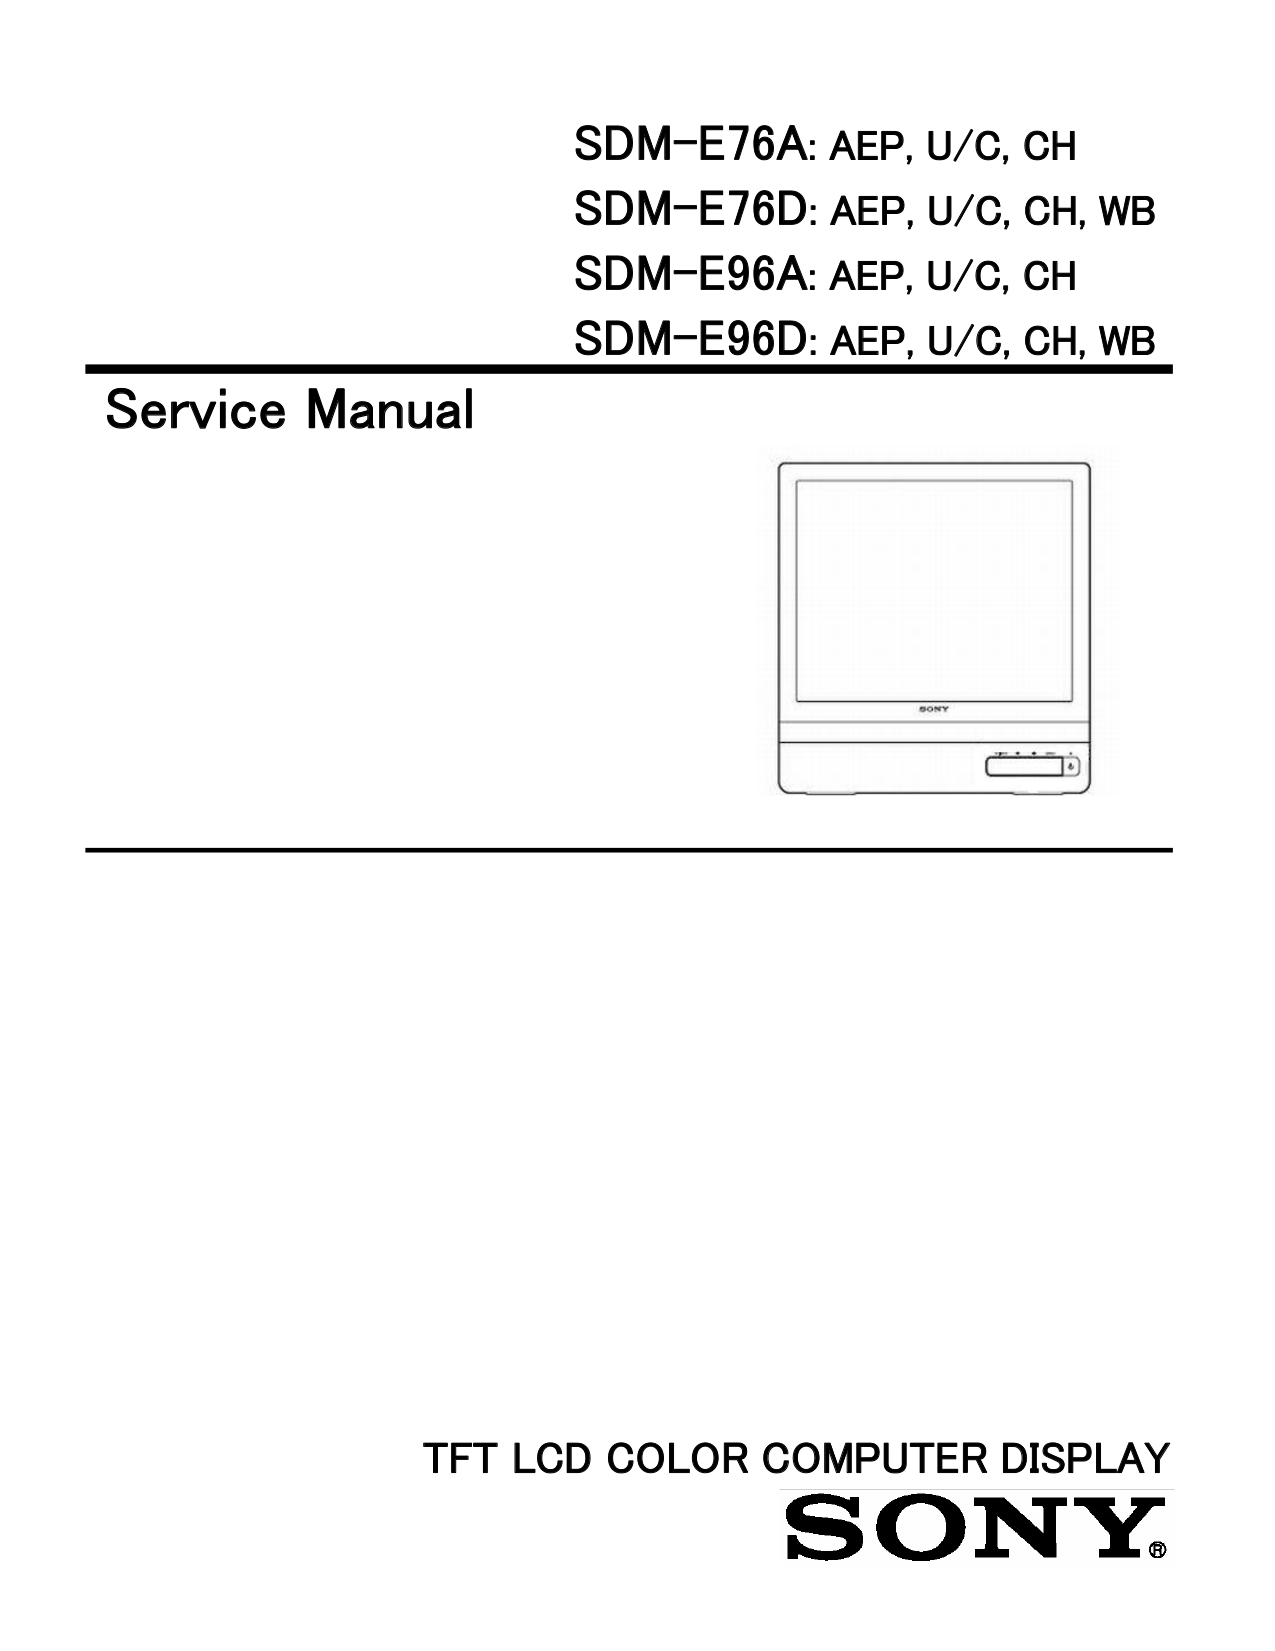 pdf for Sony Monitor SDM-E96D manual